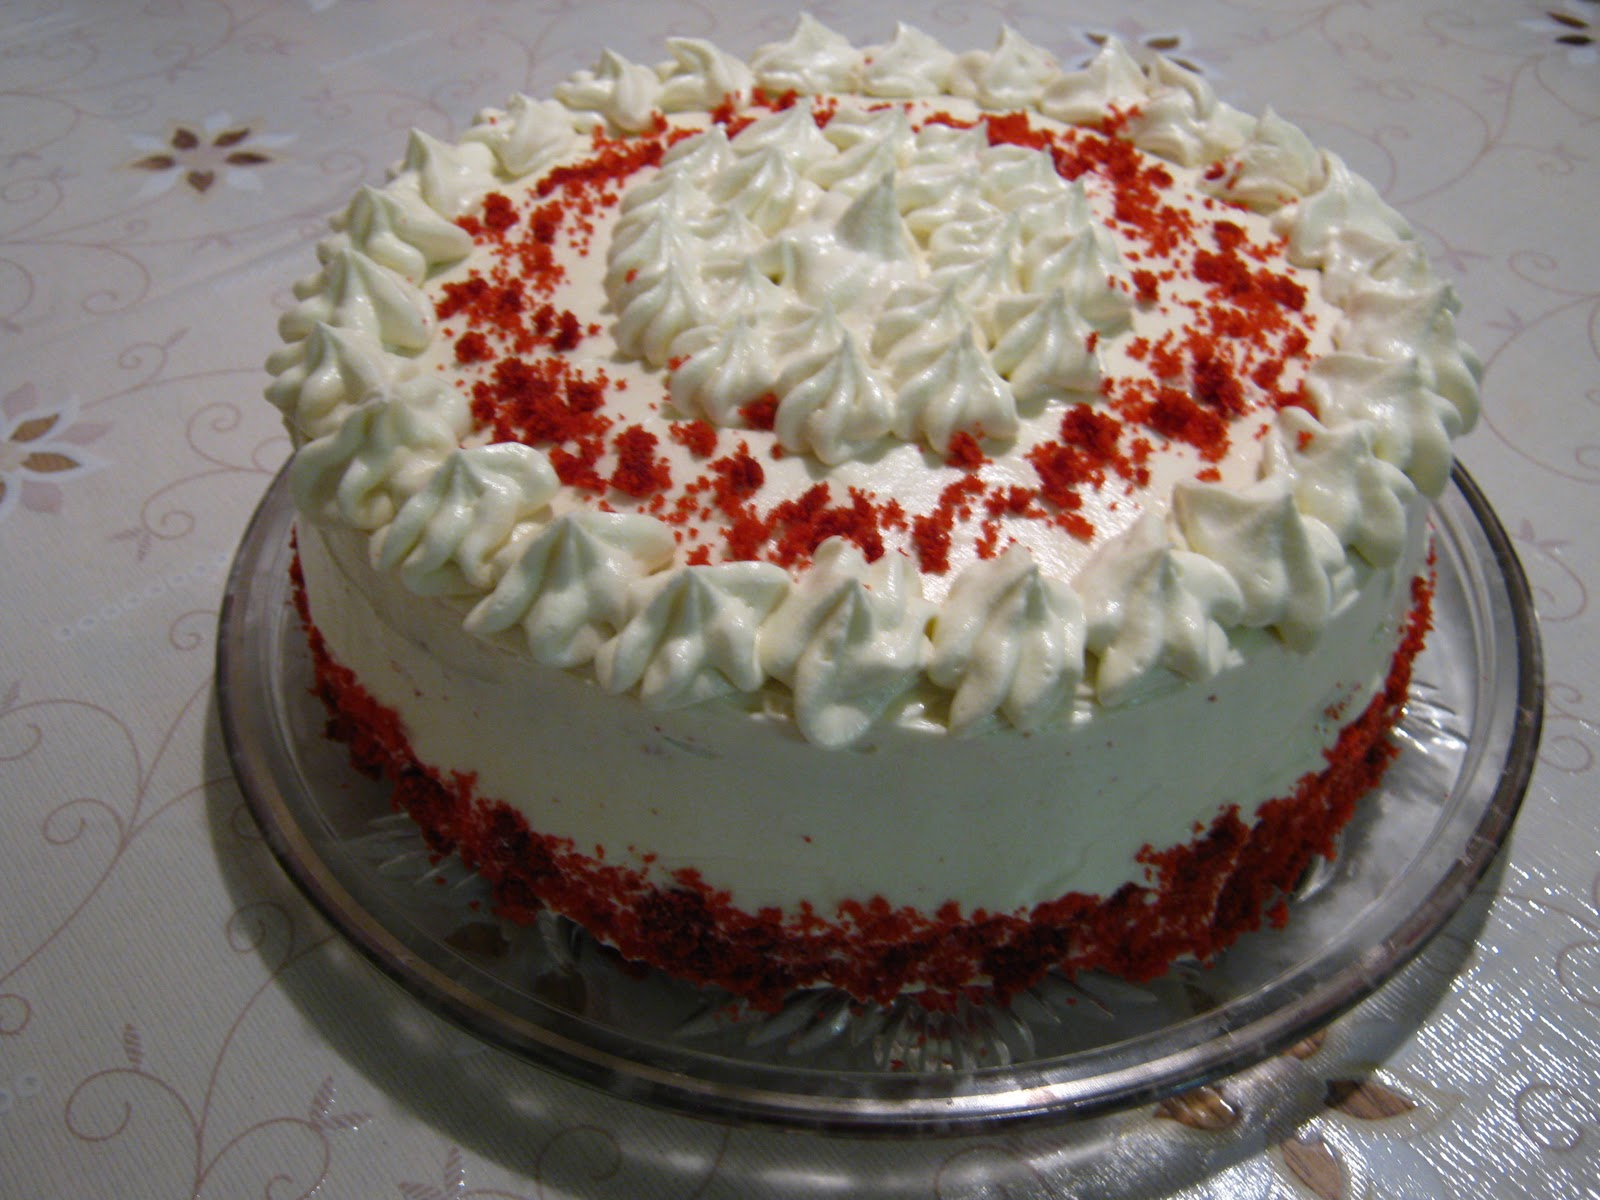 Red Velvet Cake Design Ideas : Baking with